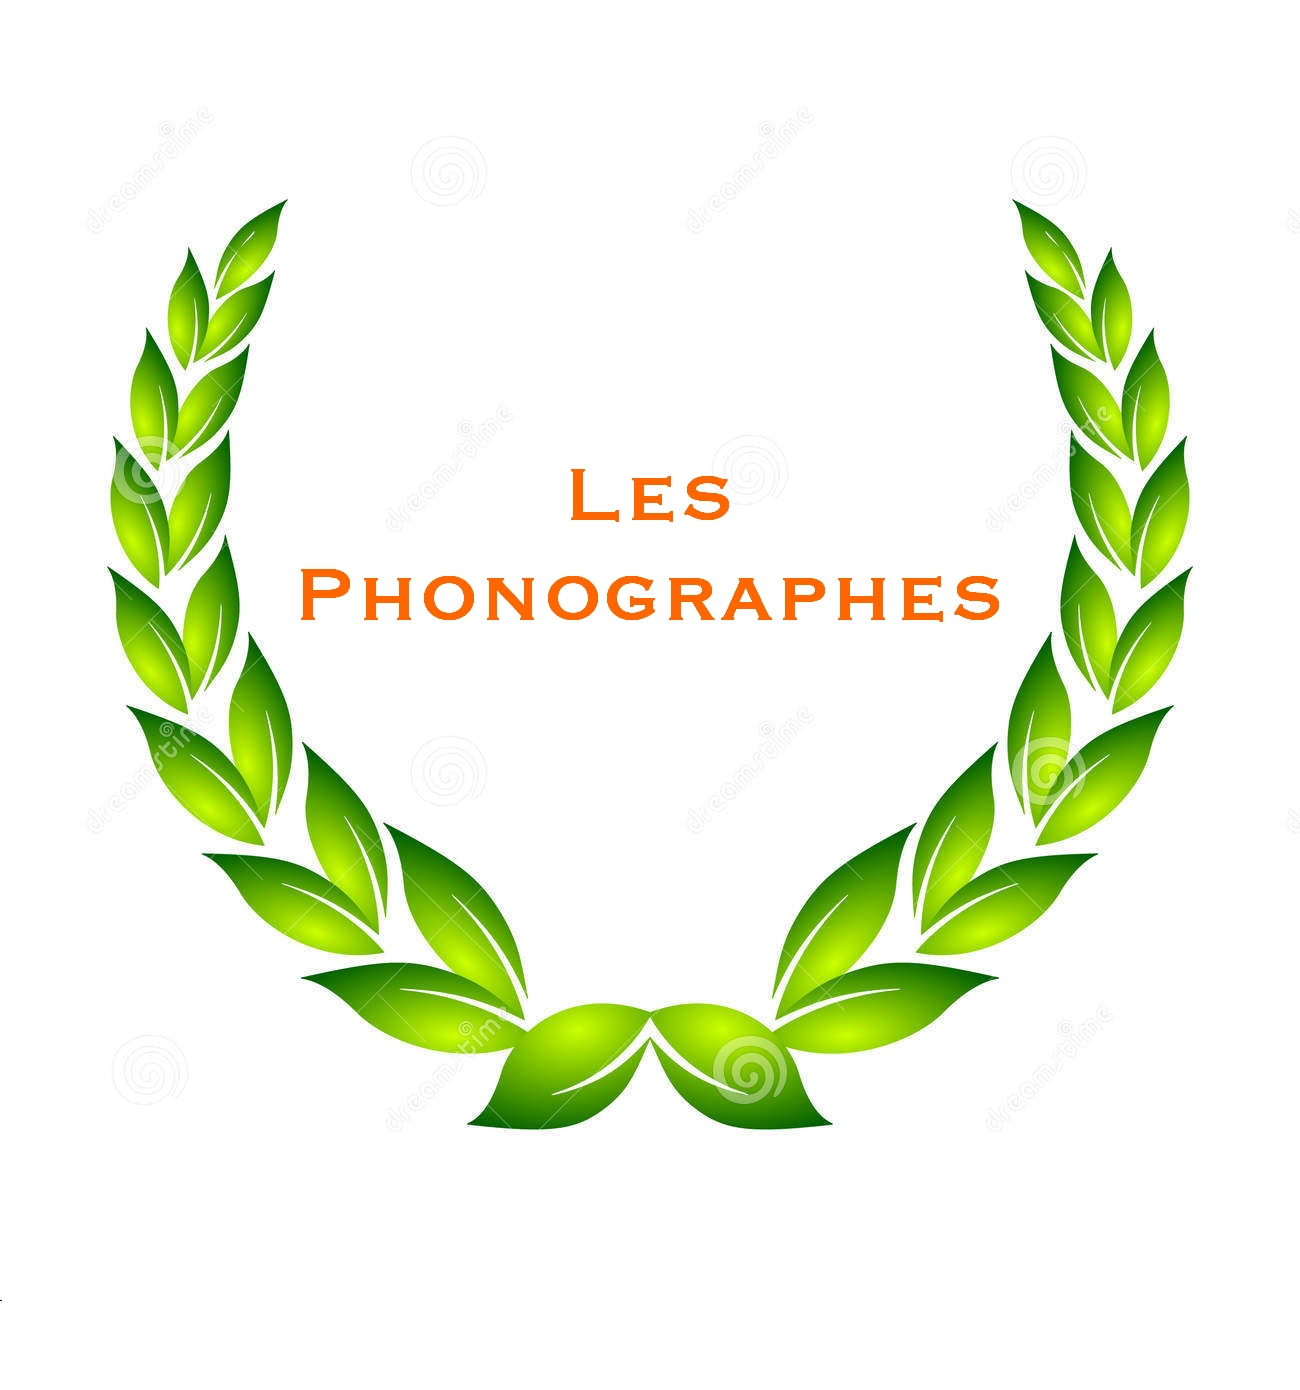 Les Phonographes